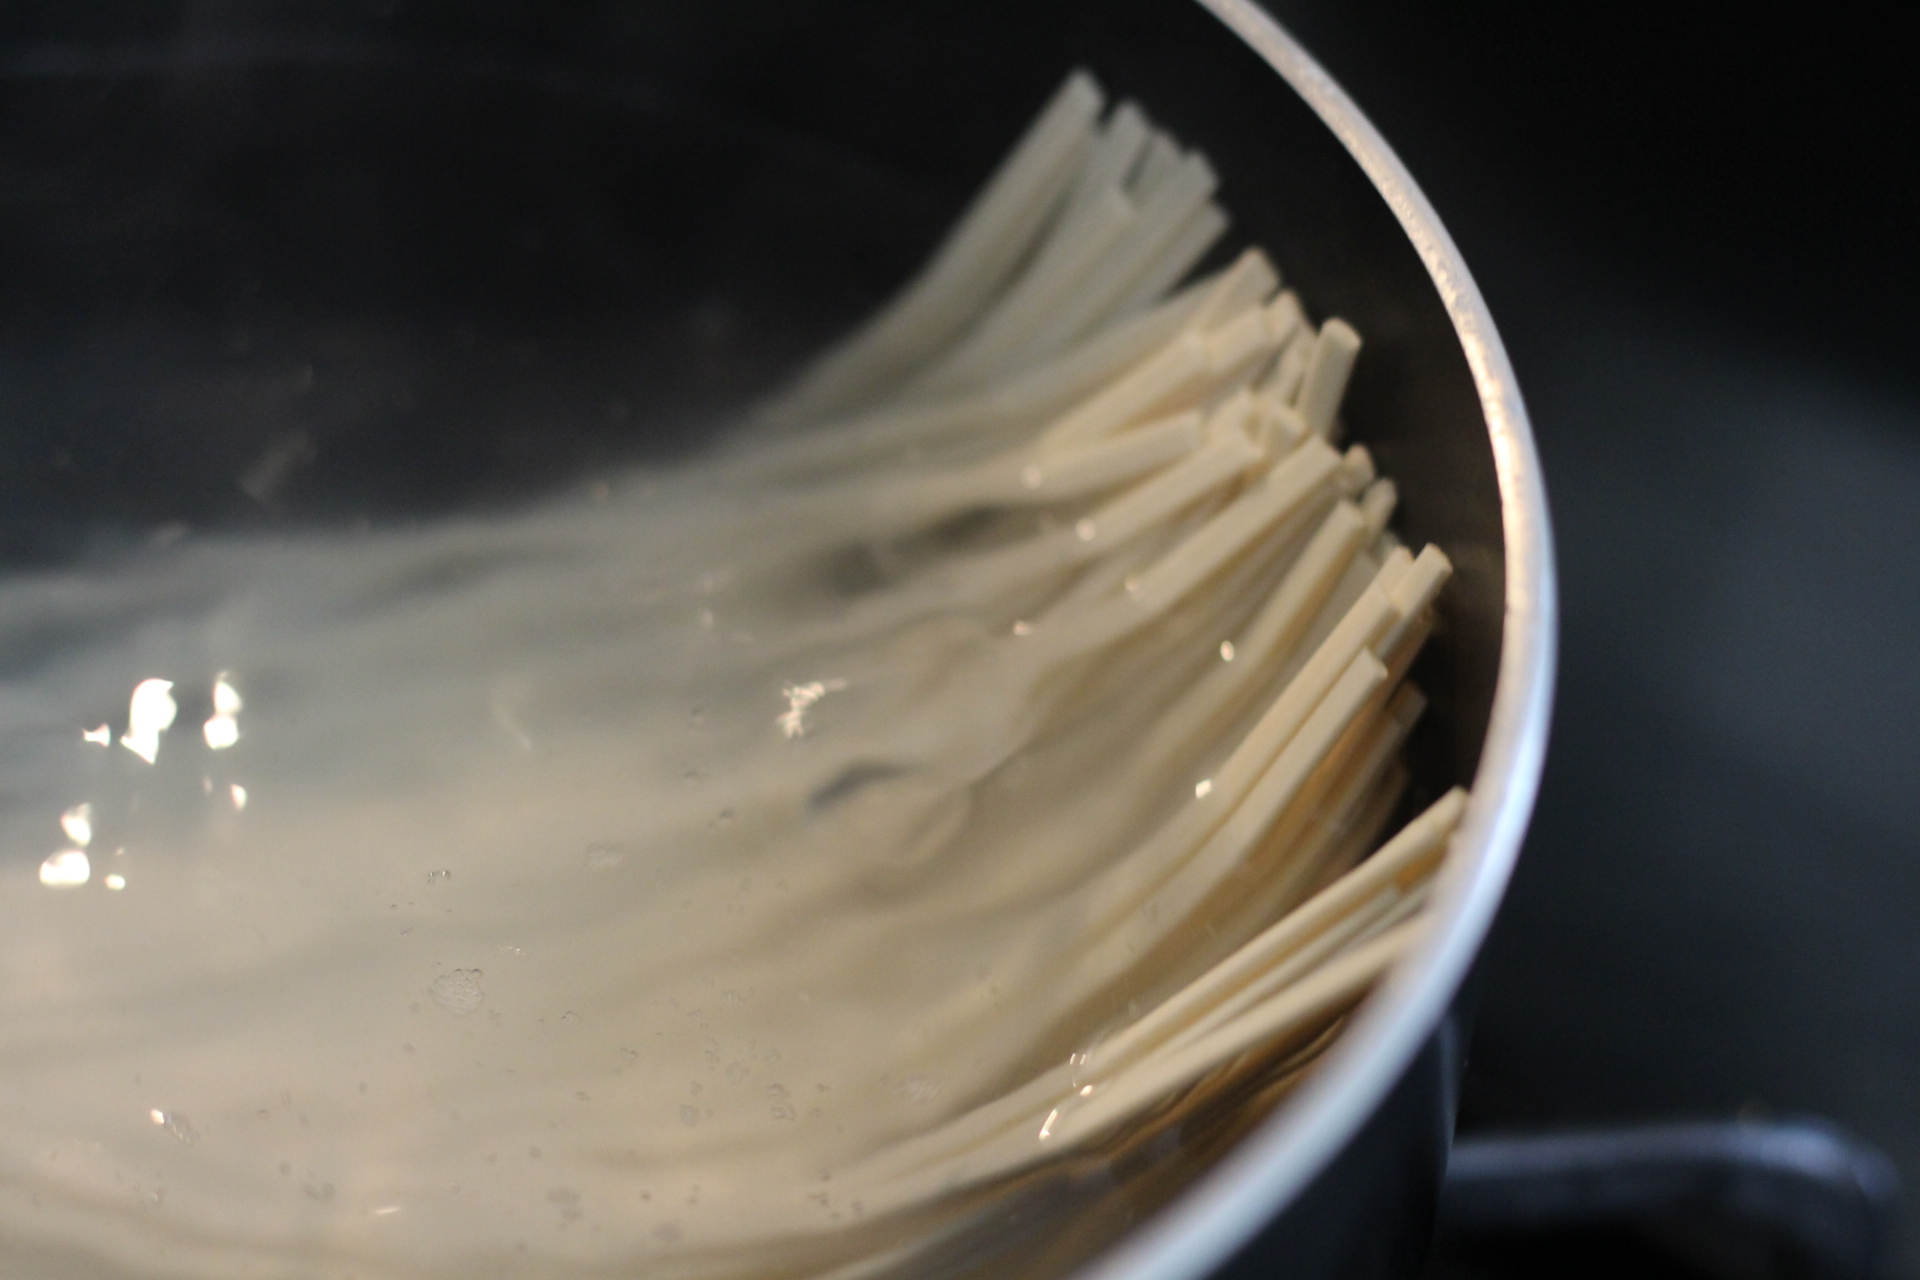 udon rice noodles cooking